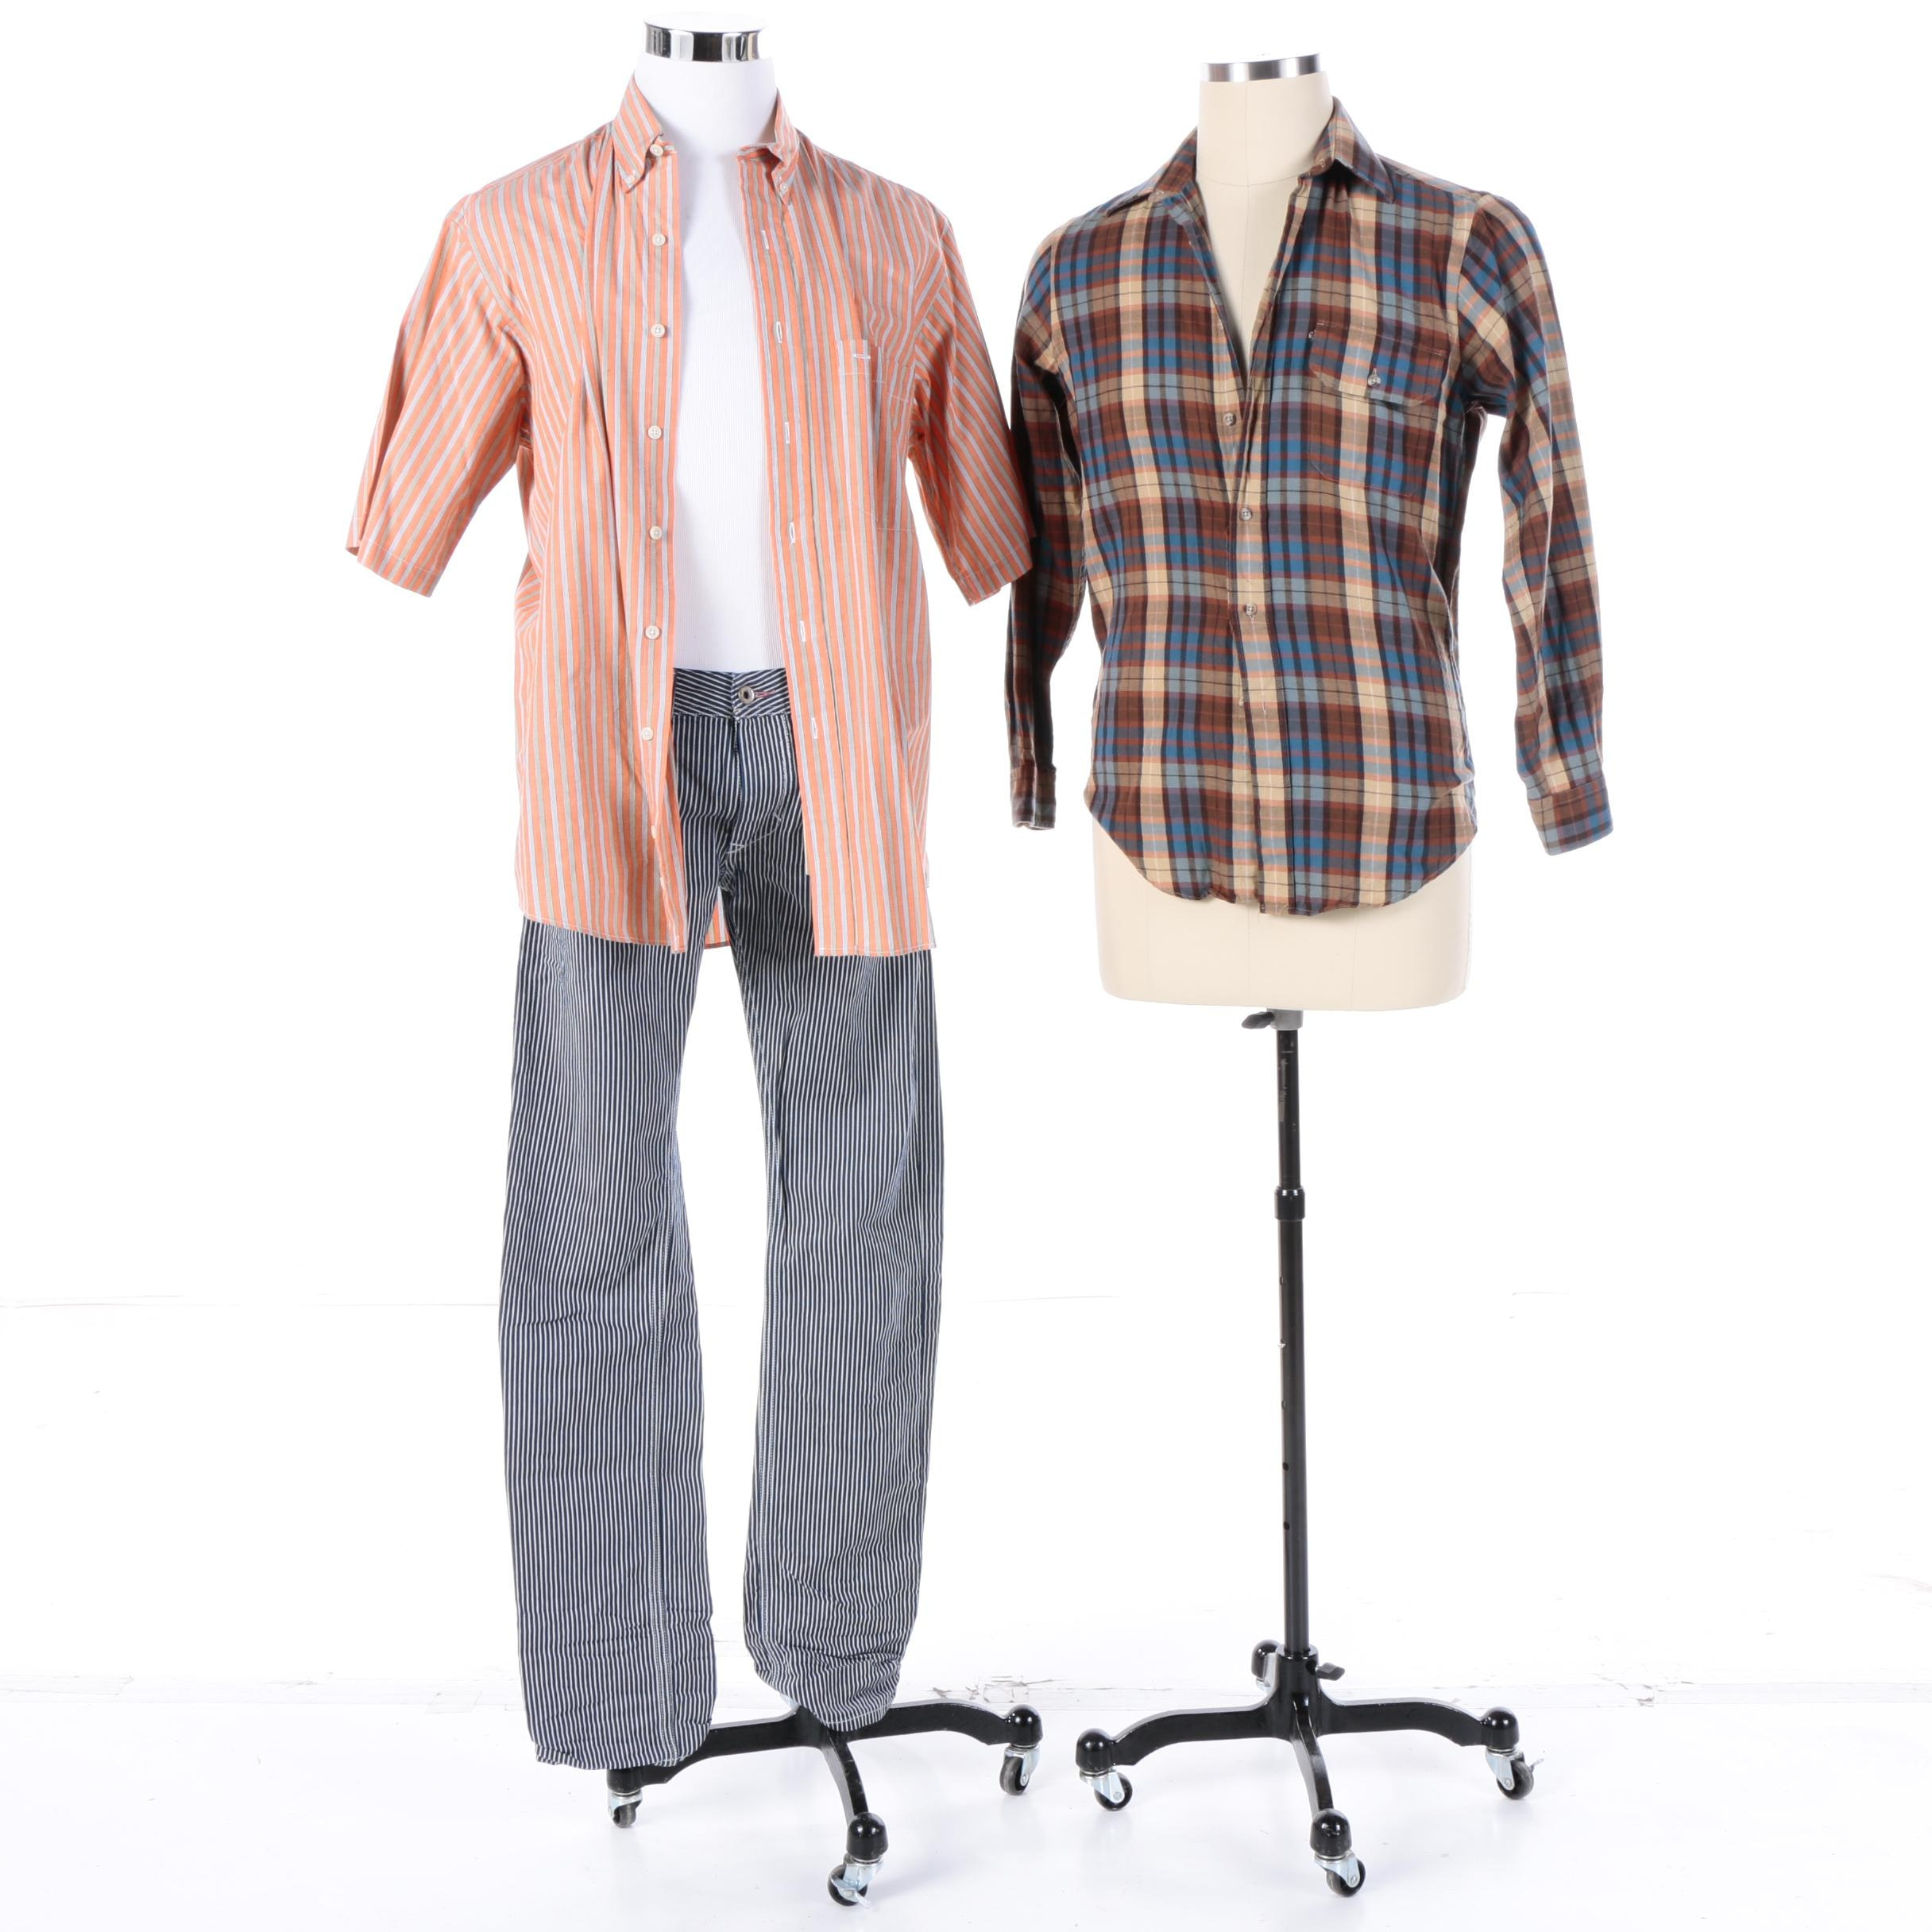 Men's Button-Up Shirts Including Burberry and Diesel Denim Pants